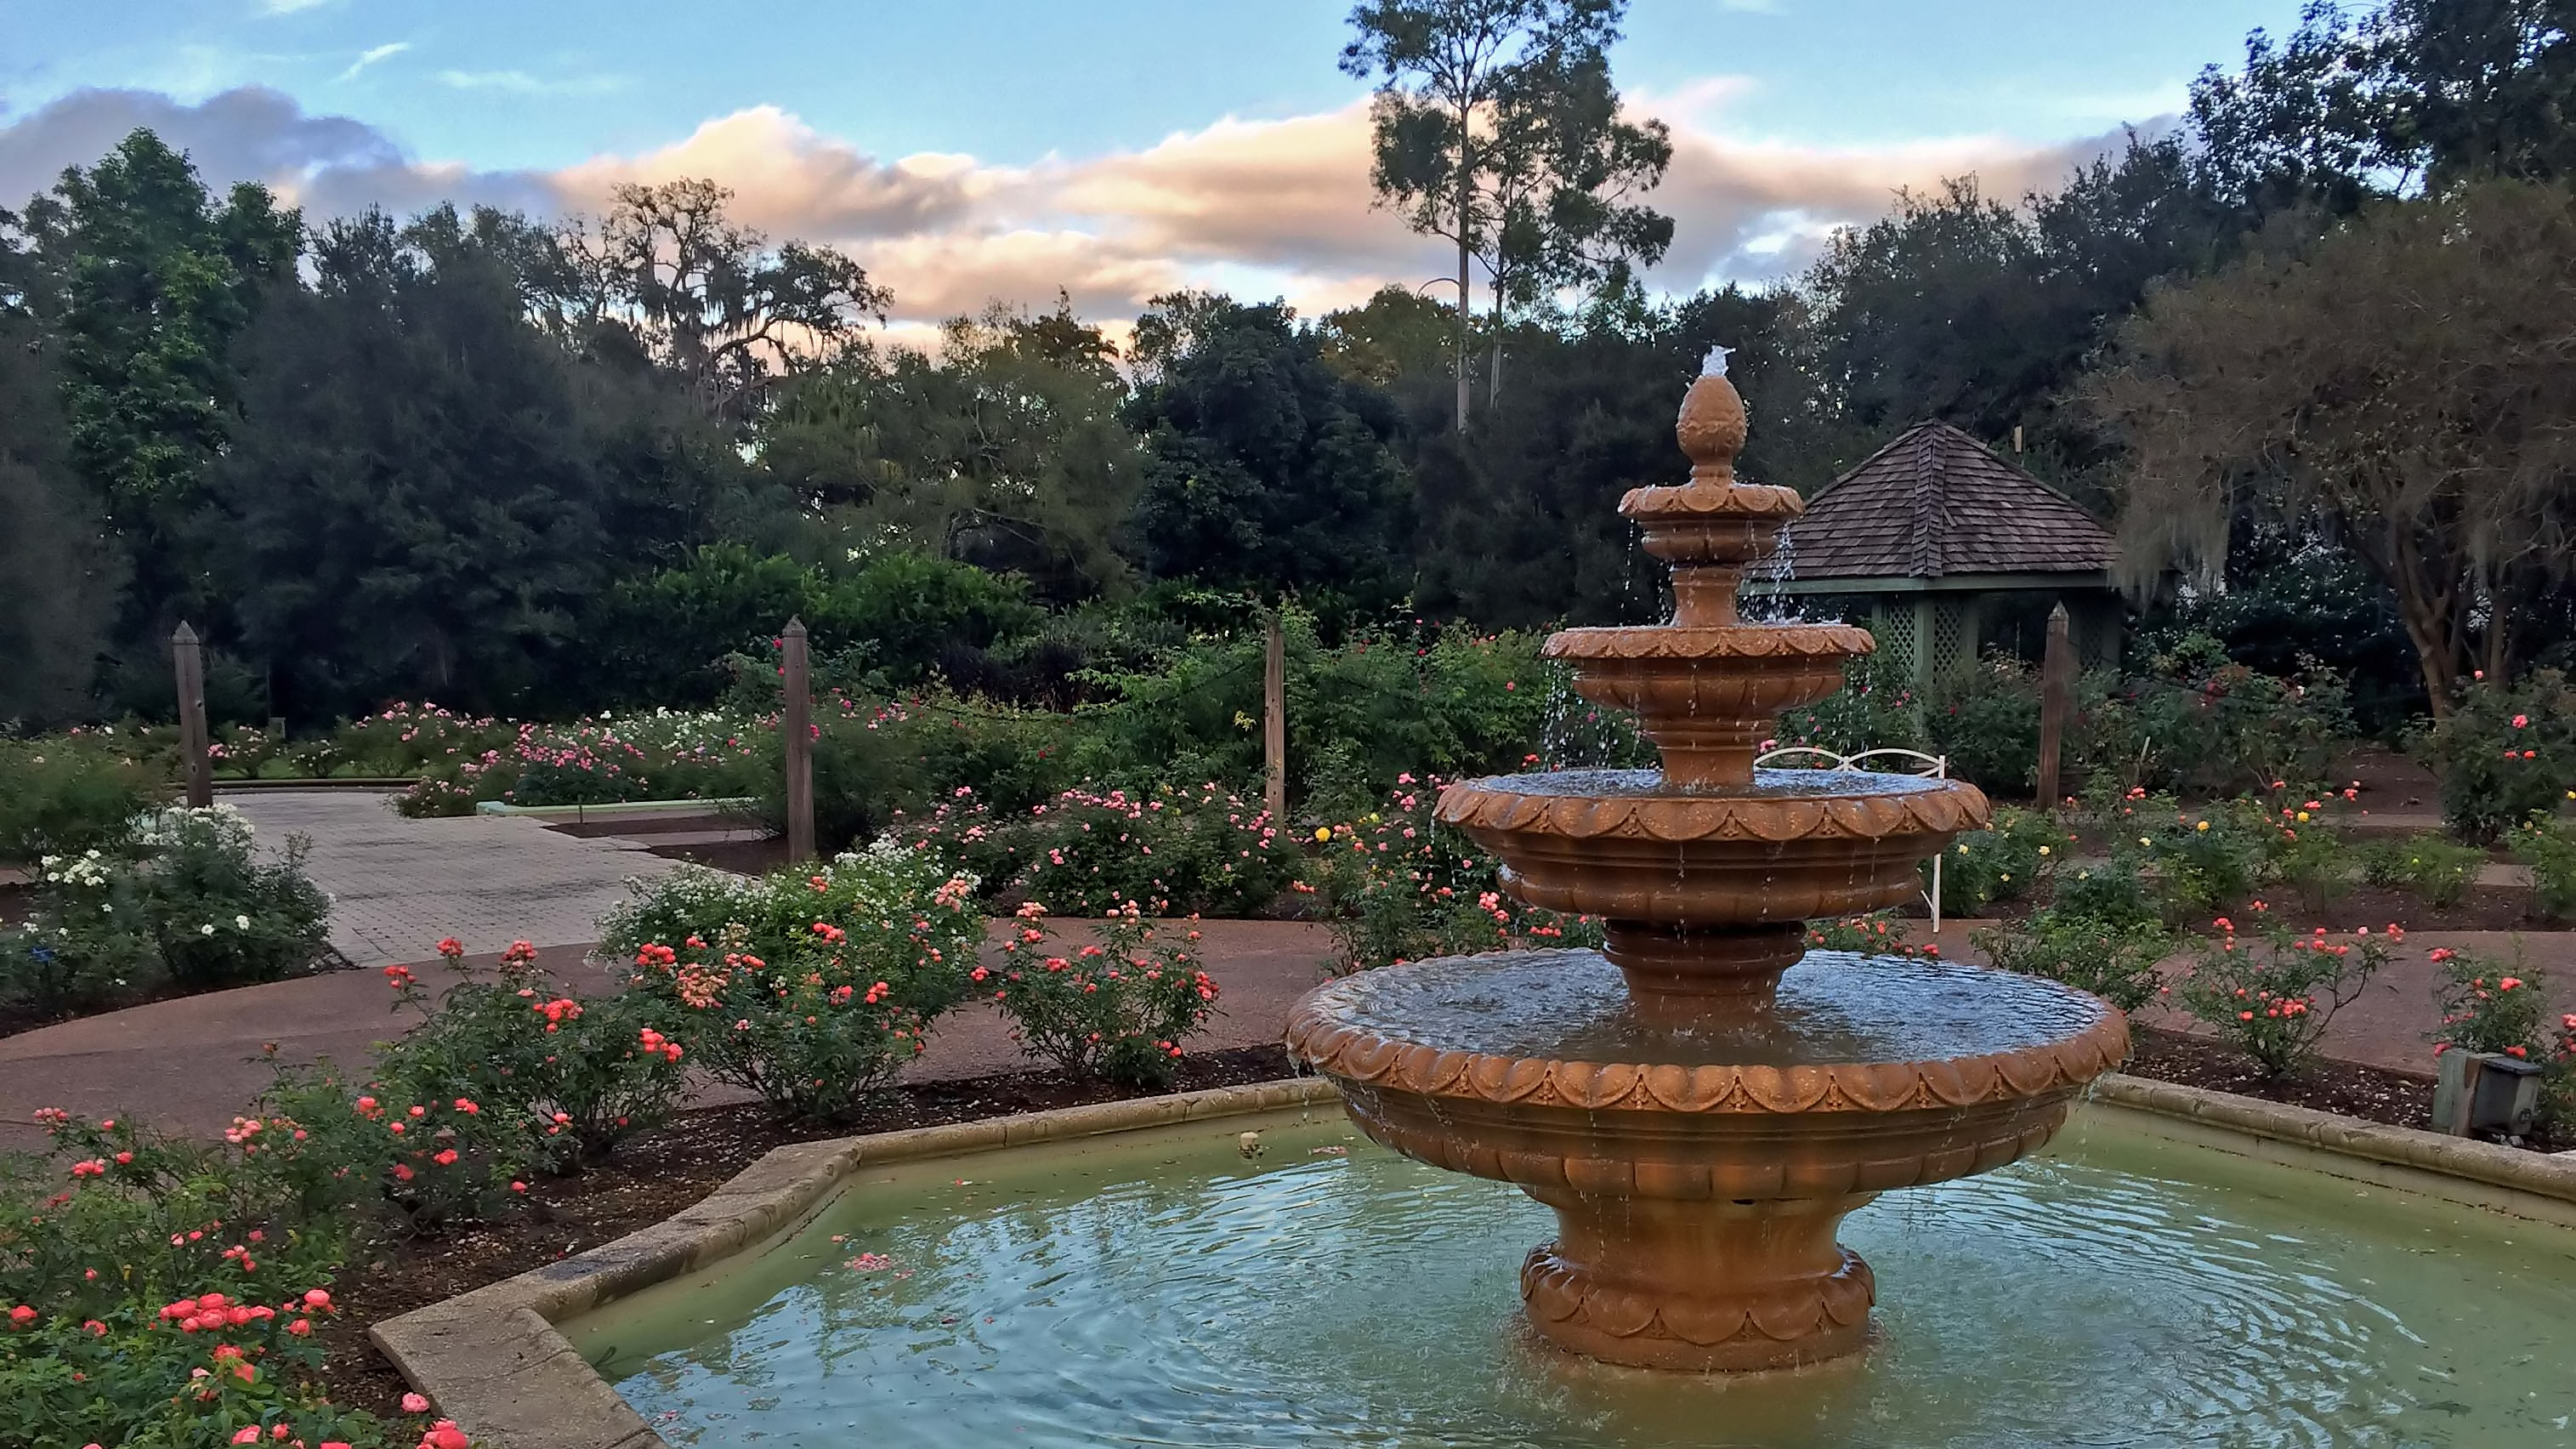 13 Best Images About Leu Gardens Weddings On Pinterest: Best Places To Take Photographs In Orlando